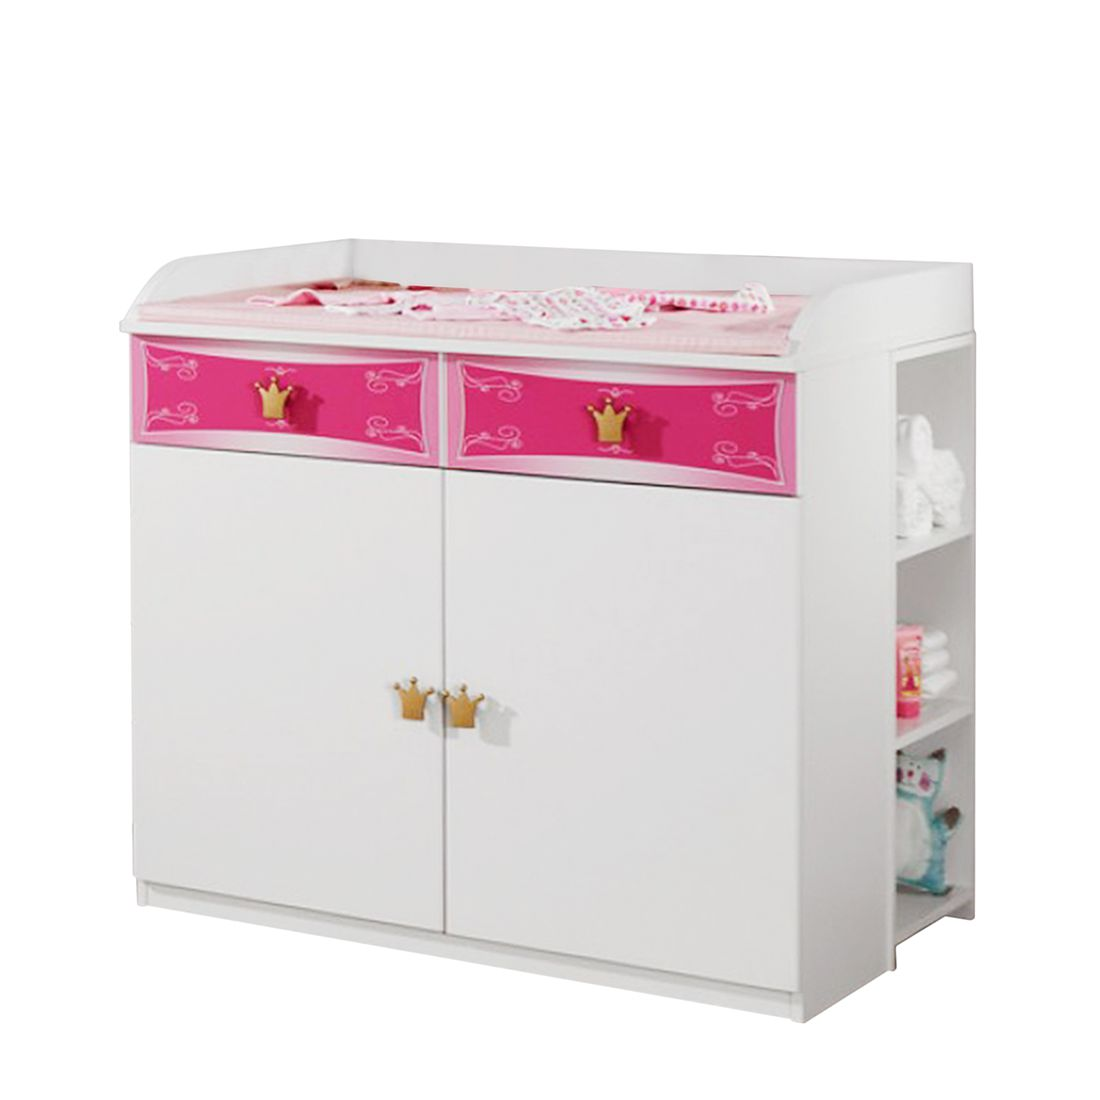 Babycommode Kate   met gouden kroon applicatie in wit roze_ Rauch Packs